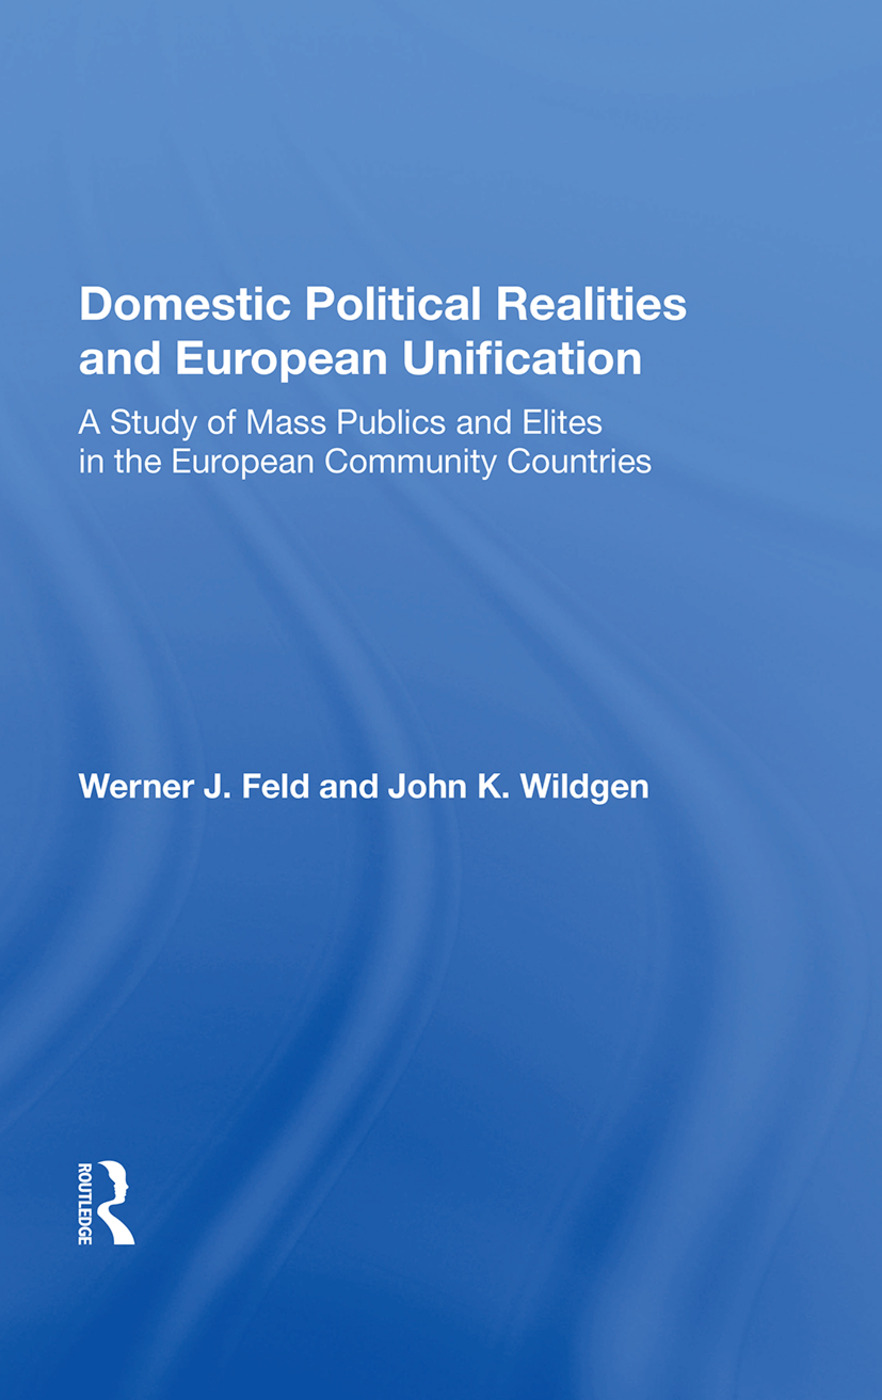 Domestic Realities Europ/h book cover